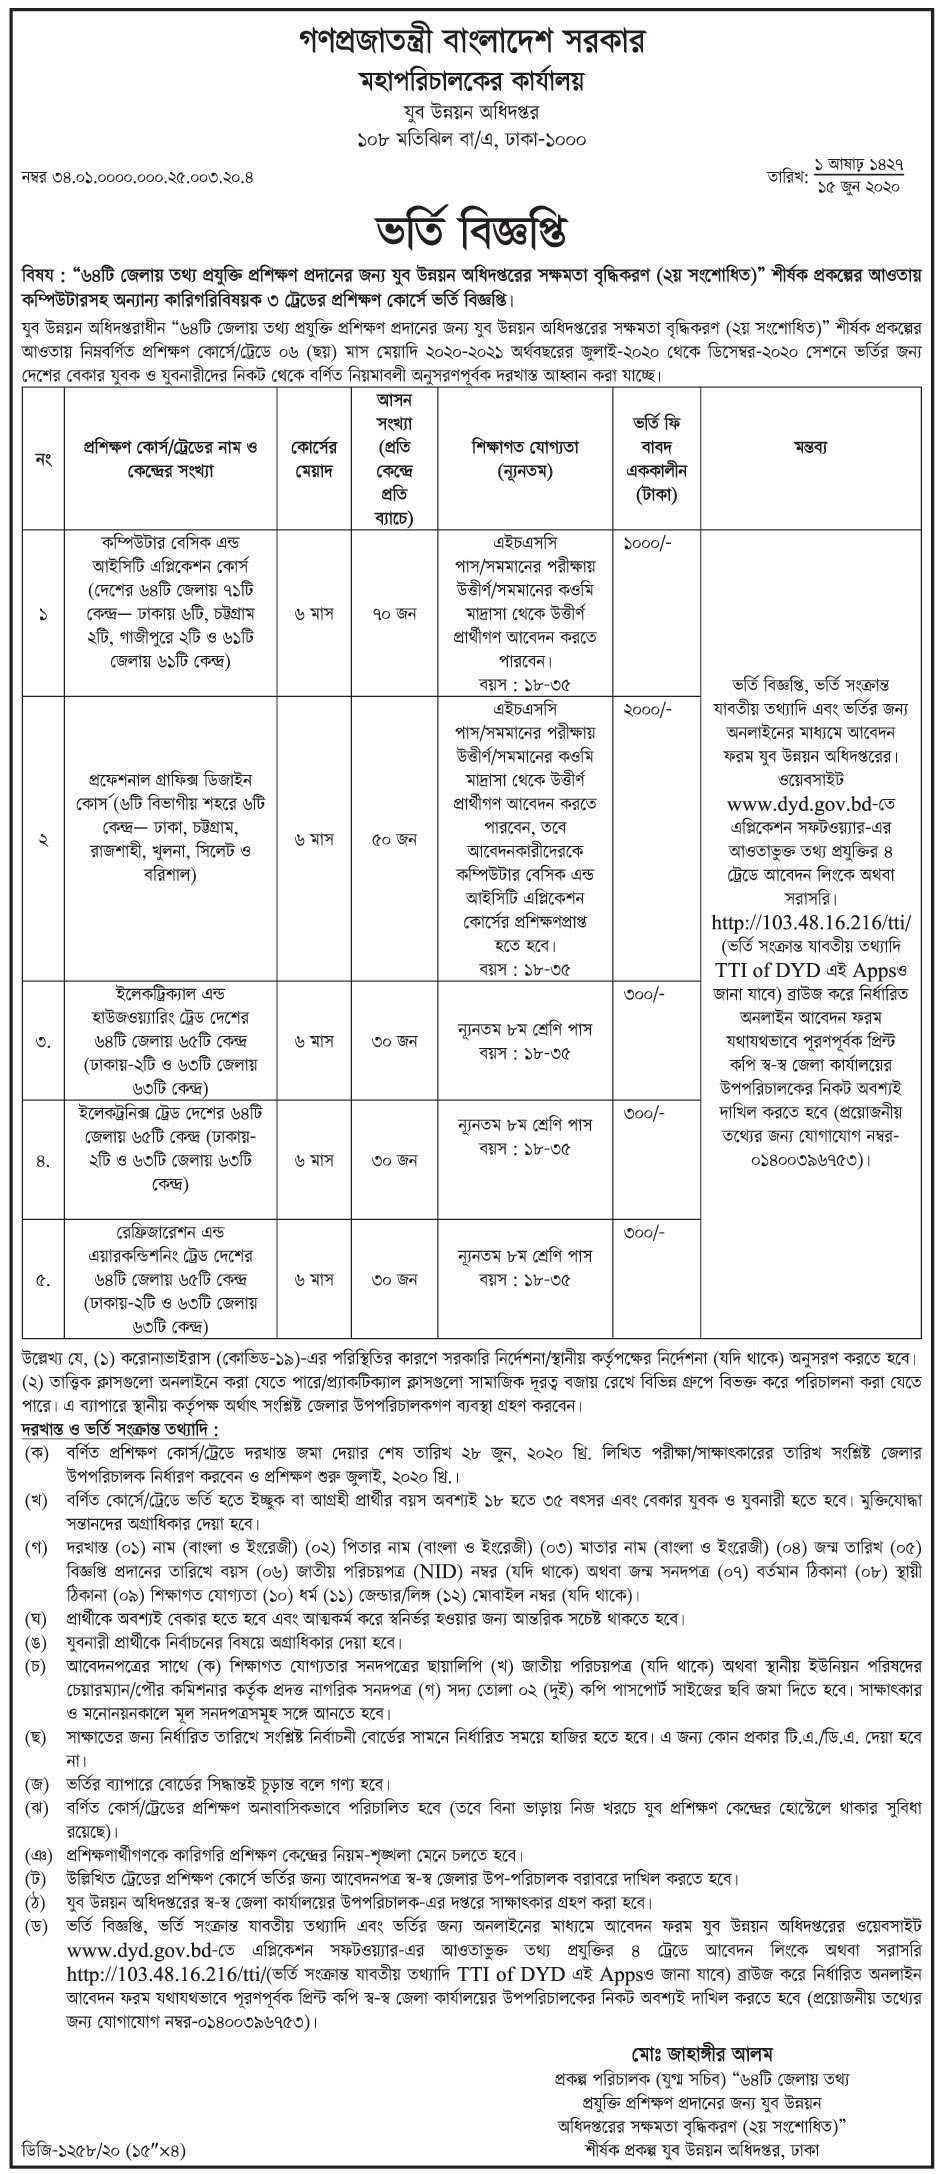 Department of Youth Development (DYD) Admission Notice 2020